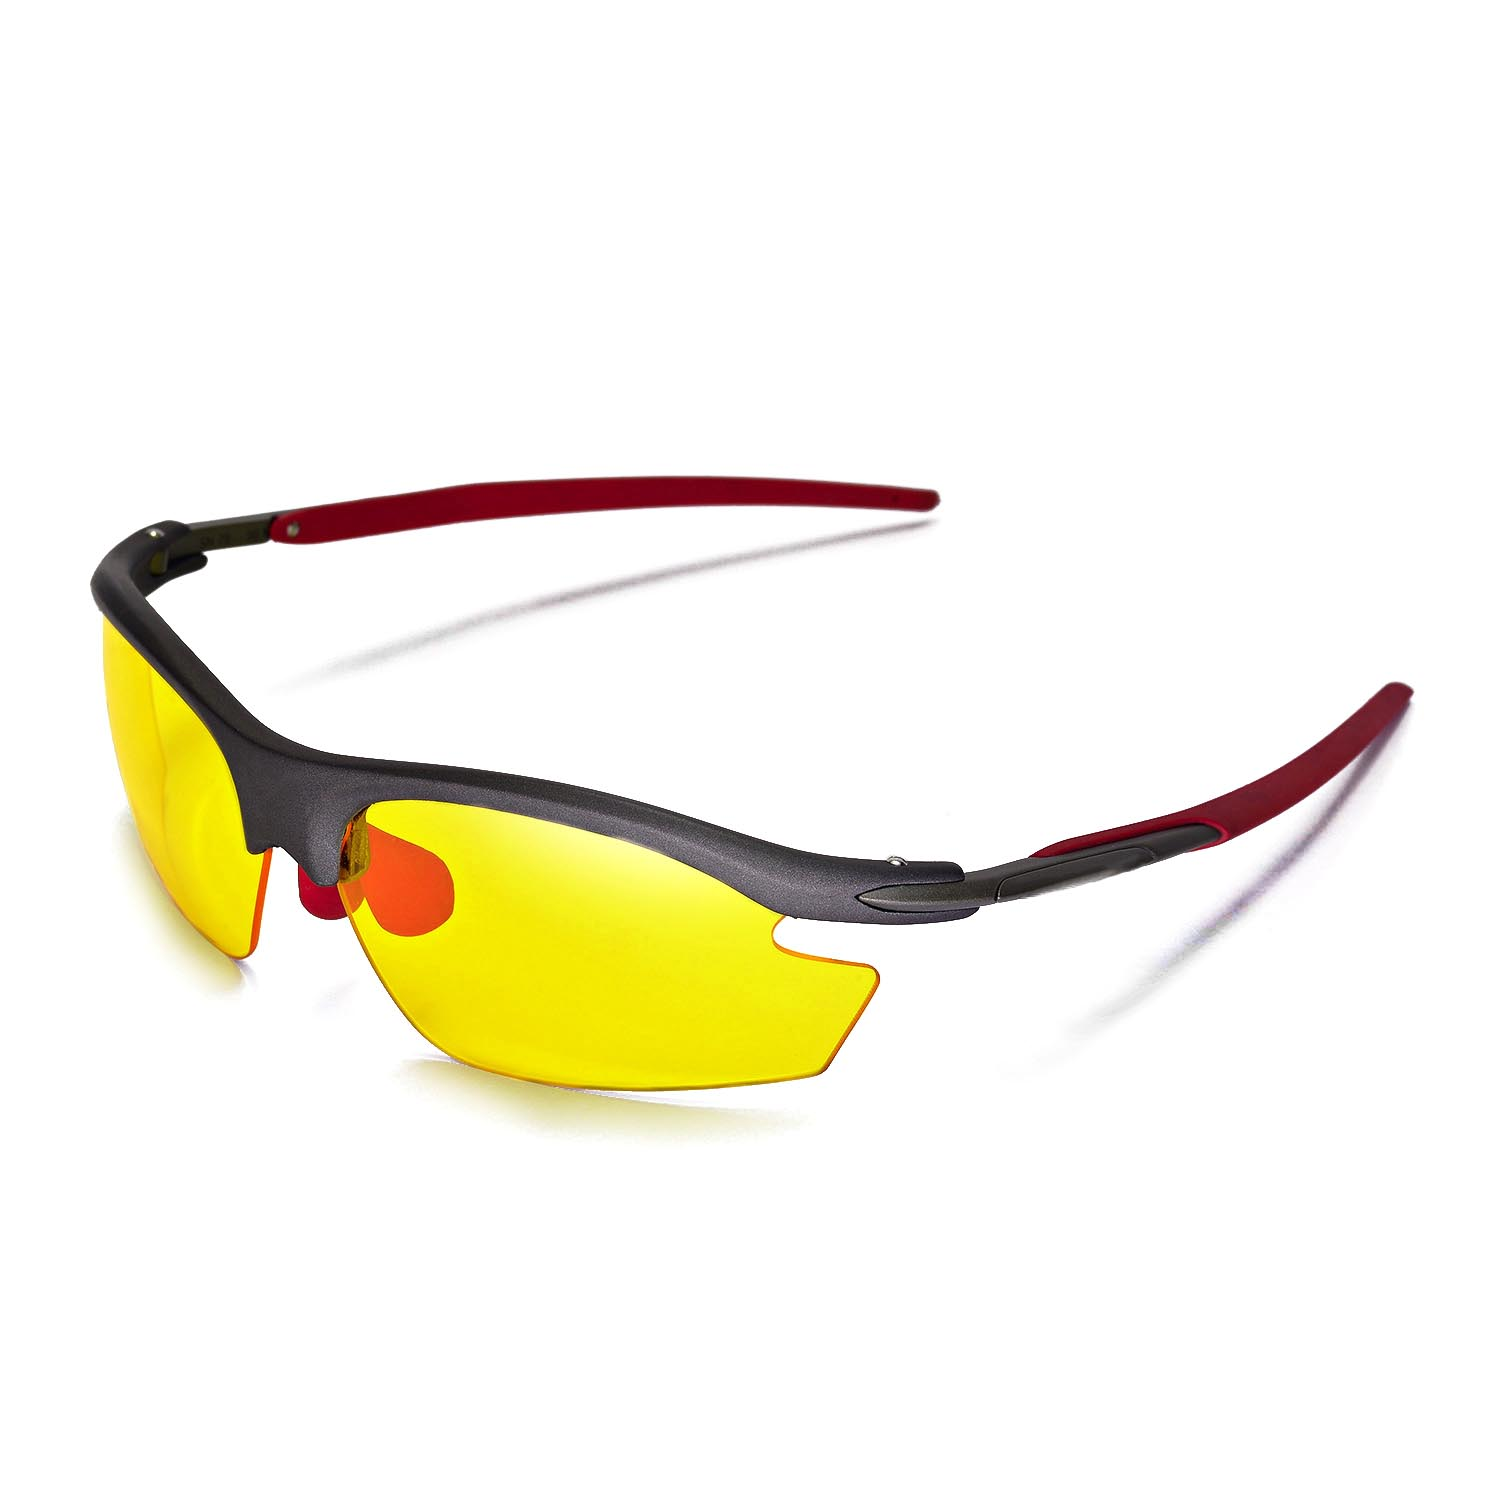 Rudy Project Sunglasses Replacement  new walleva yellow replacemen t lenses for rudy project rydon